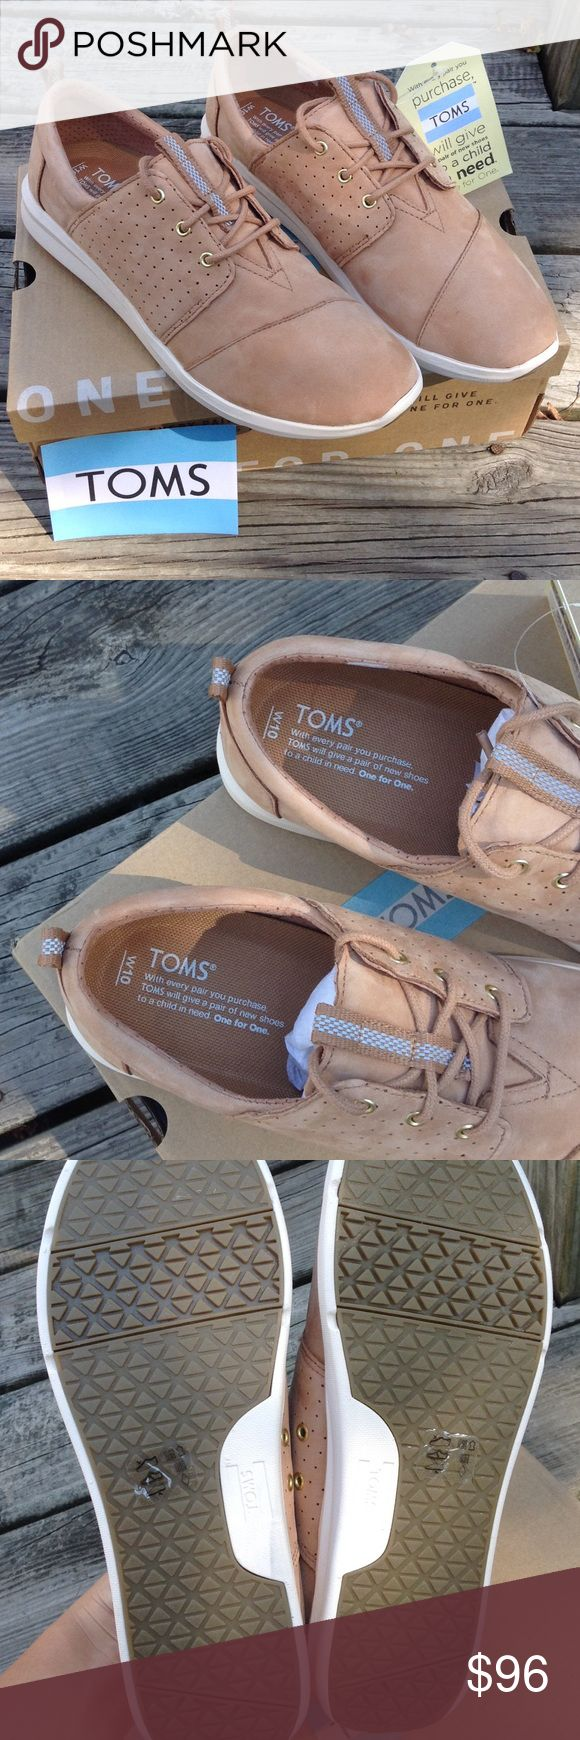 BRAND NEW!!! NEVER WORN! Toms Del Ray sneakers Brand new! never worn! Toms Del Ray sandstorm nubuck leather sneakers. Theses shoes are awesome! Comes with original box, toms bag, and toms sticker. I would say that they run true to size and like most Toms a little snug at first but then stretch some with wear. TOMS Shoes Sneakers